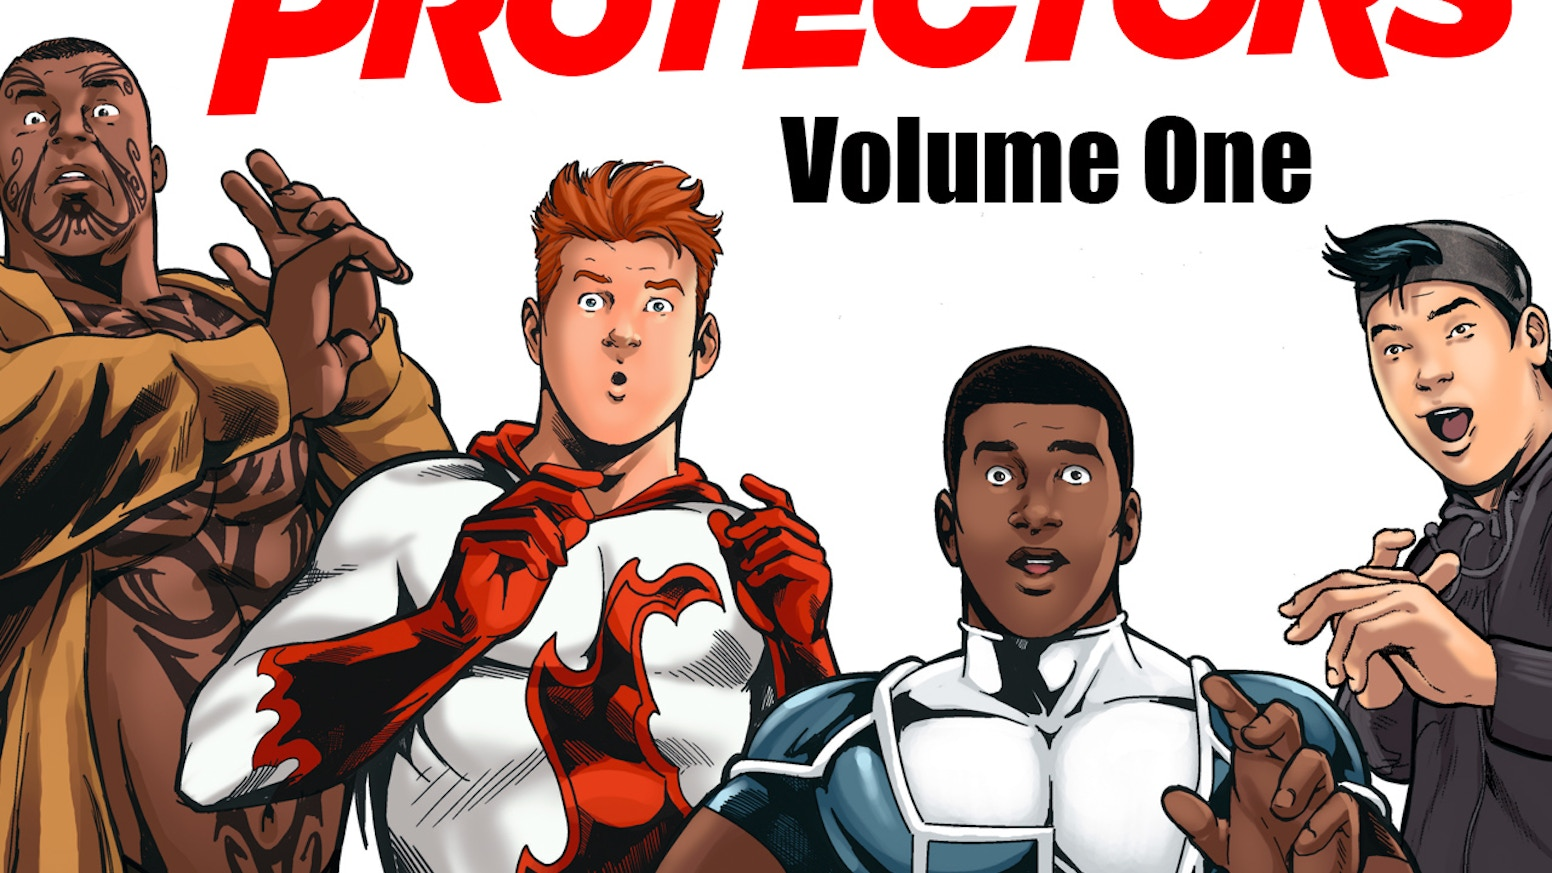 Get the book, trading cards & more for The Young Protectors—a smart superhero tale featuring a hero who just happens to like other guys